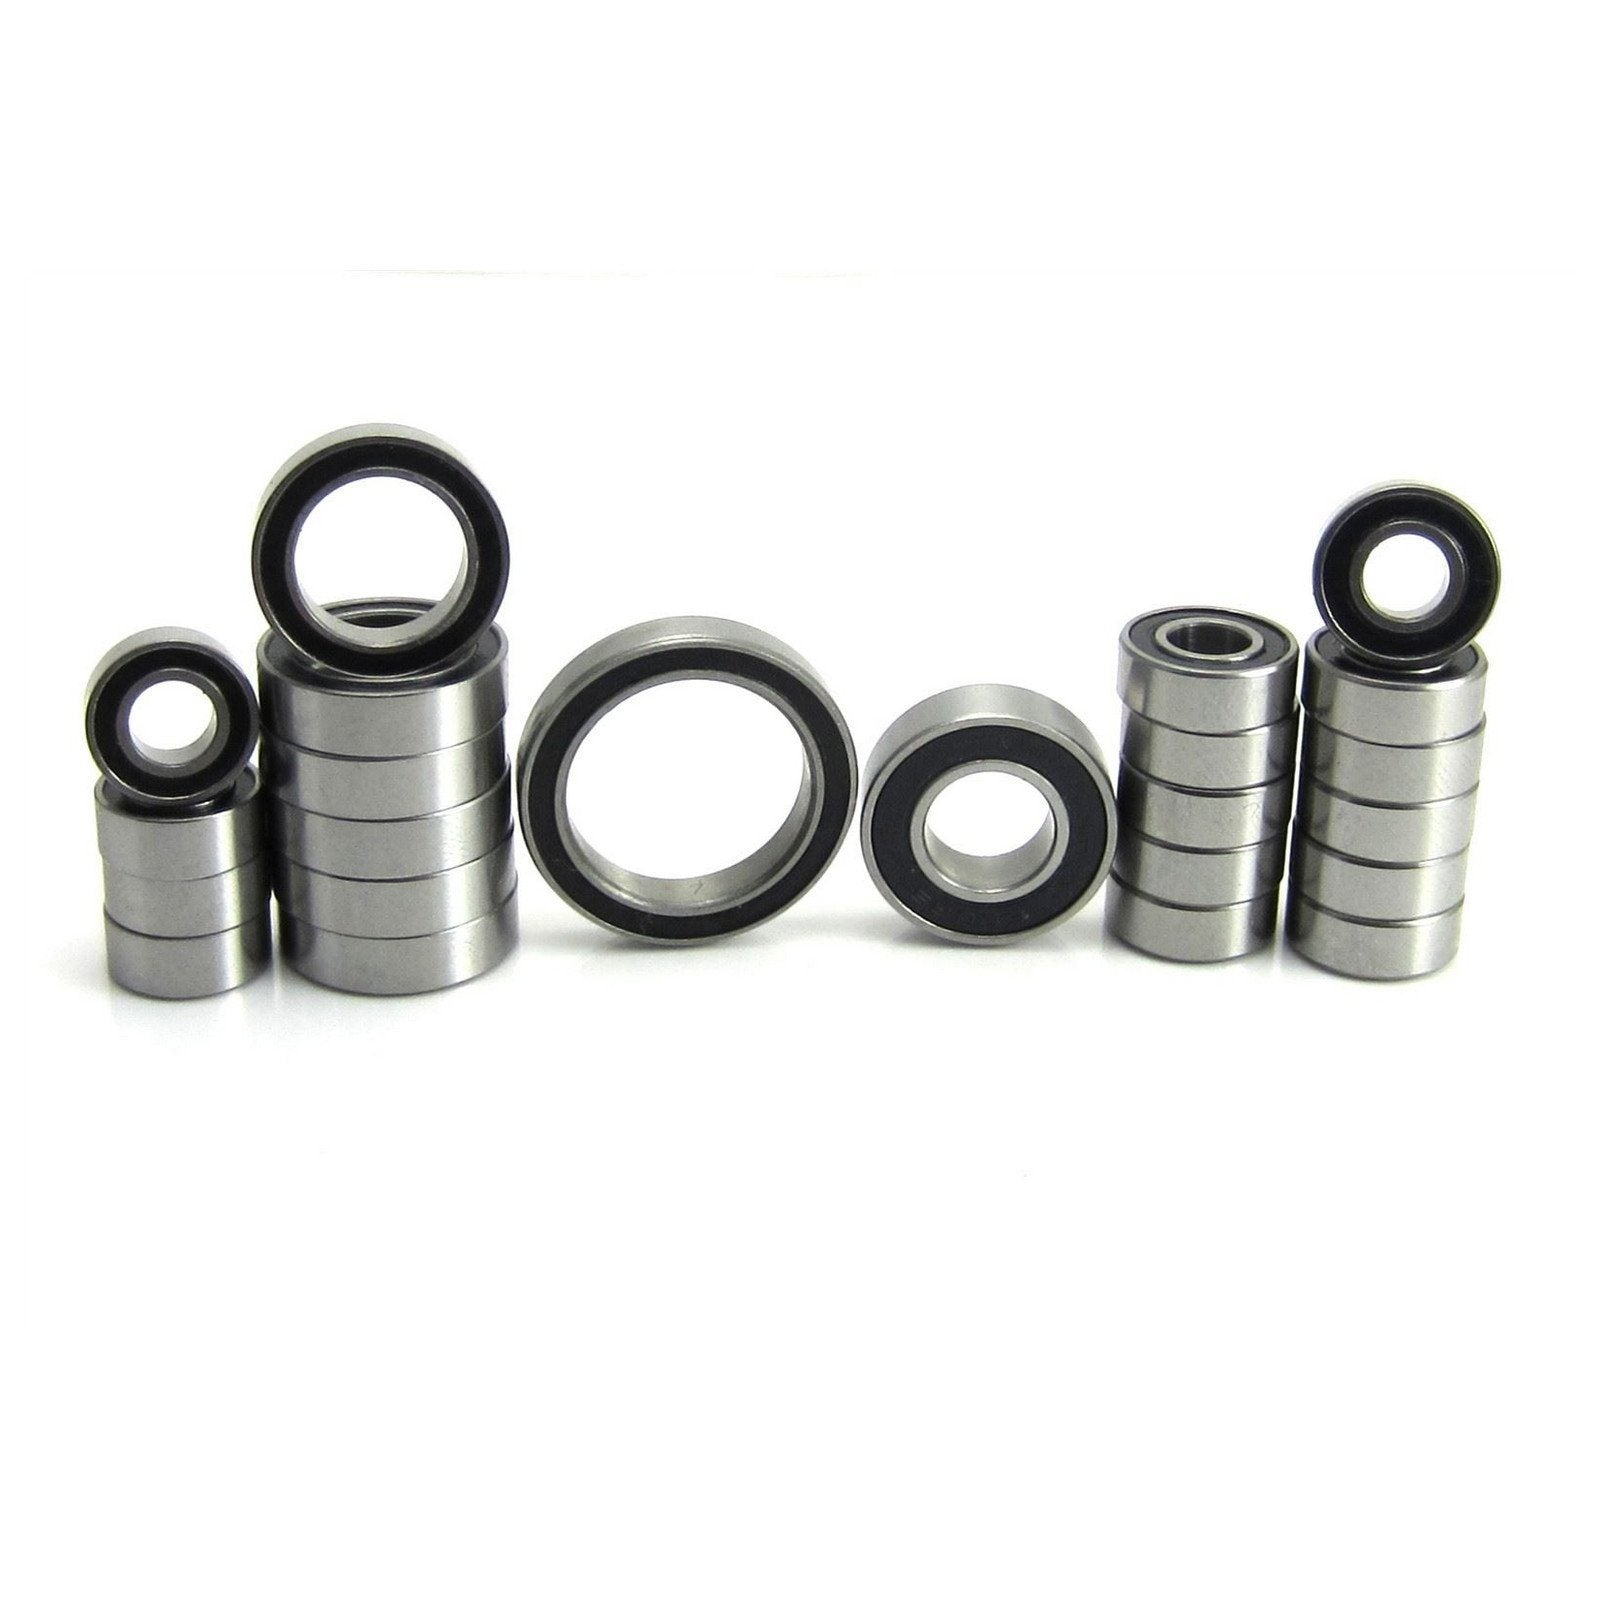 TRB RC Precision Bearing Kit (23) Rubber Sealed Axial Wraith - trb-rc-bearings